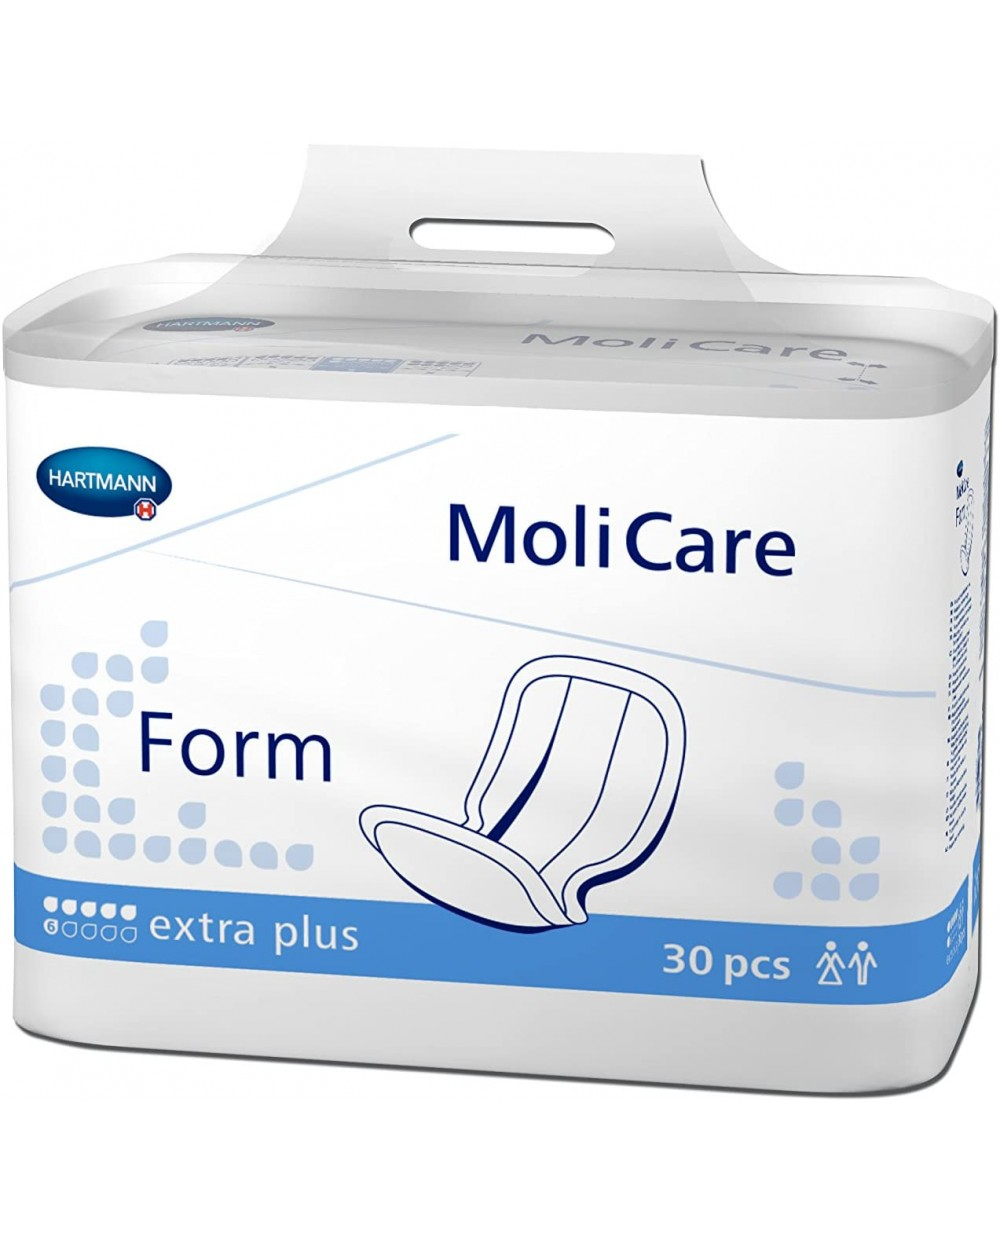 Hartmann Molicare Form Extra Plus - 30 protections